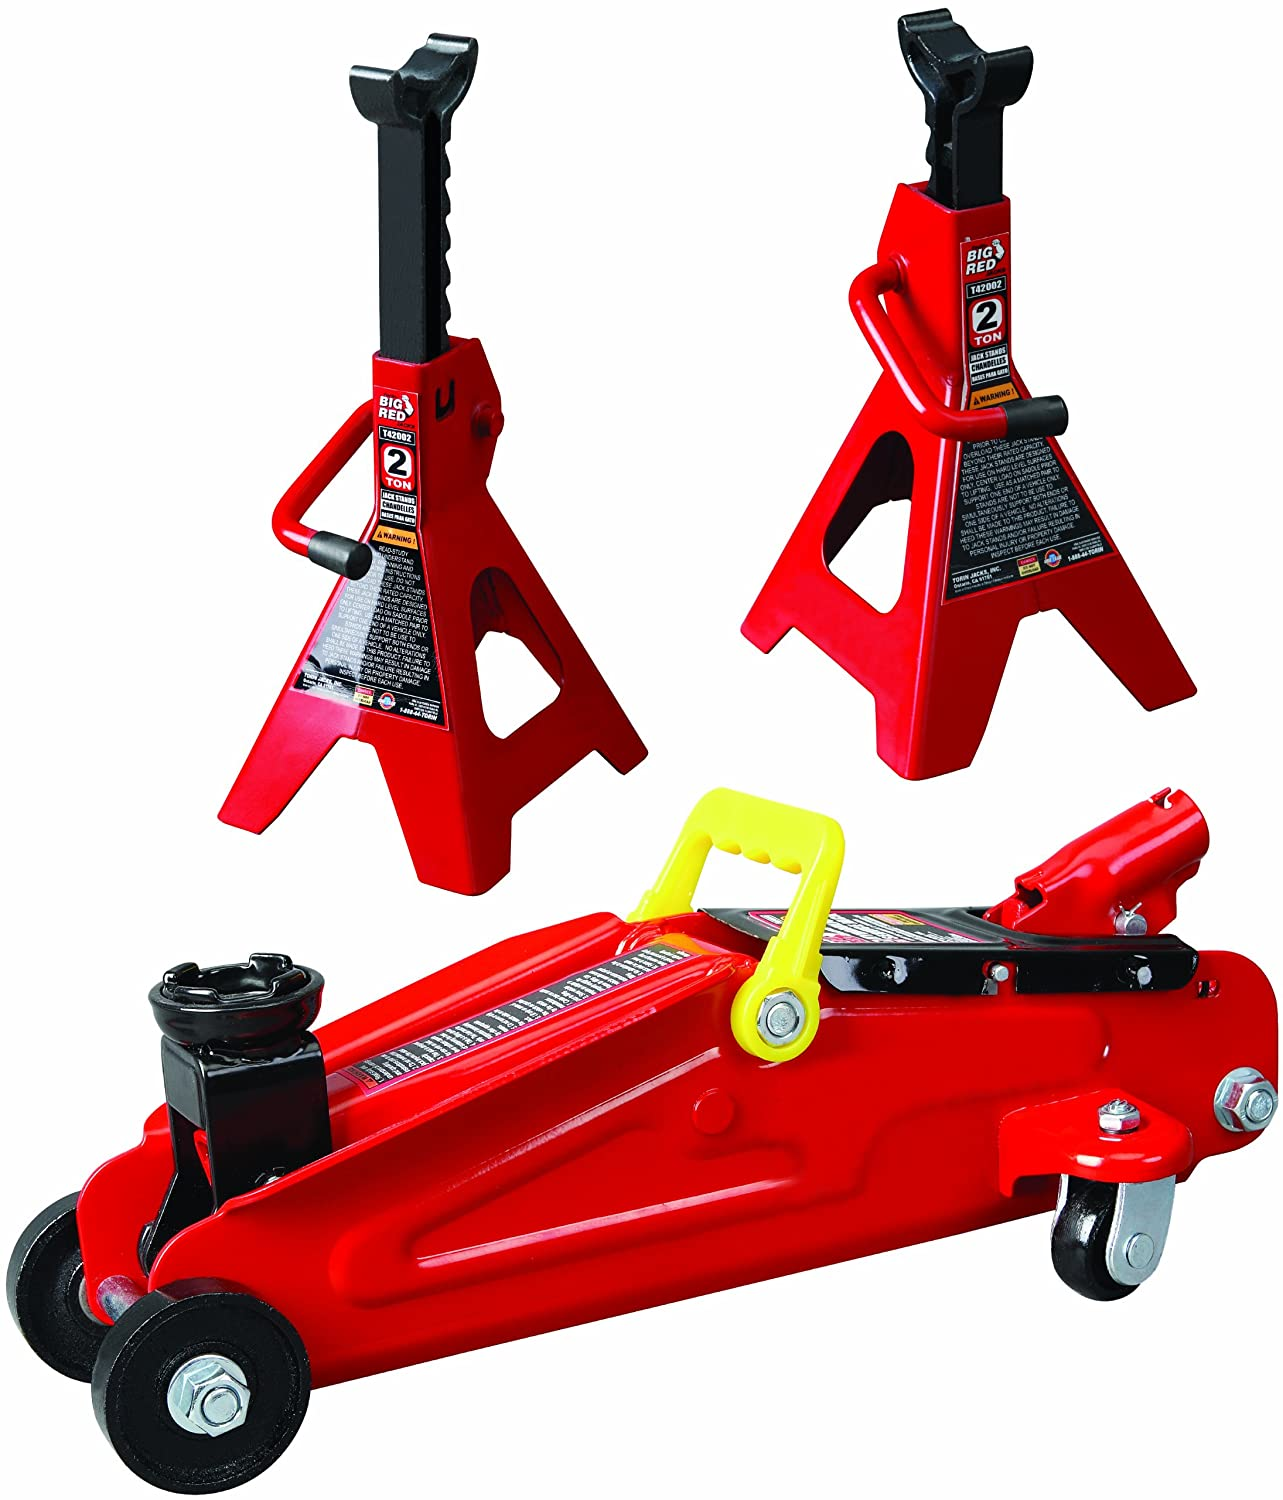 Torin Big Red Hydraulic Trolley Floor Jack Combo with 2 Jack Stands, 2 Ton Capacity T82001